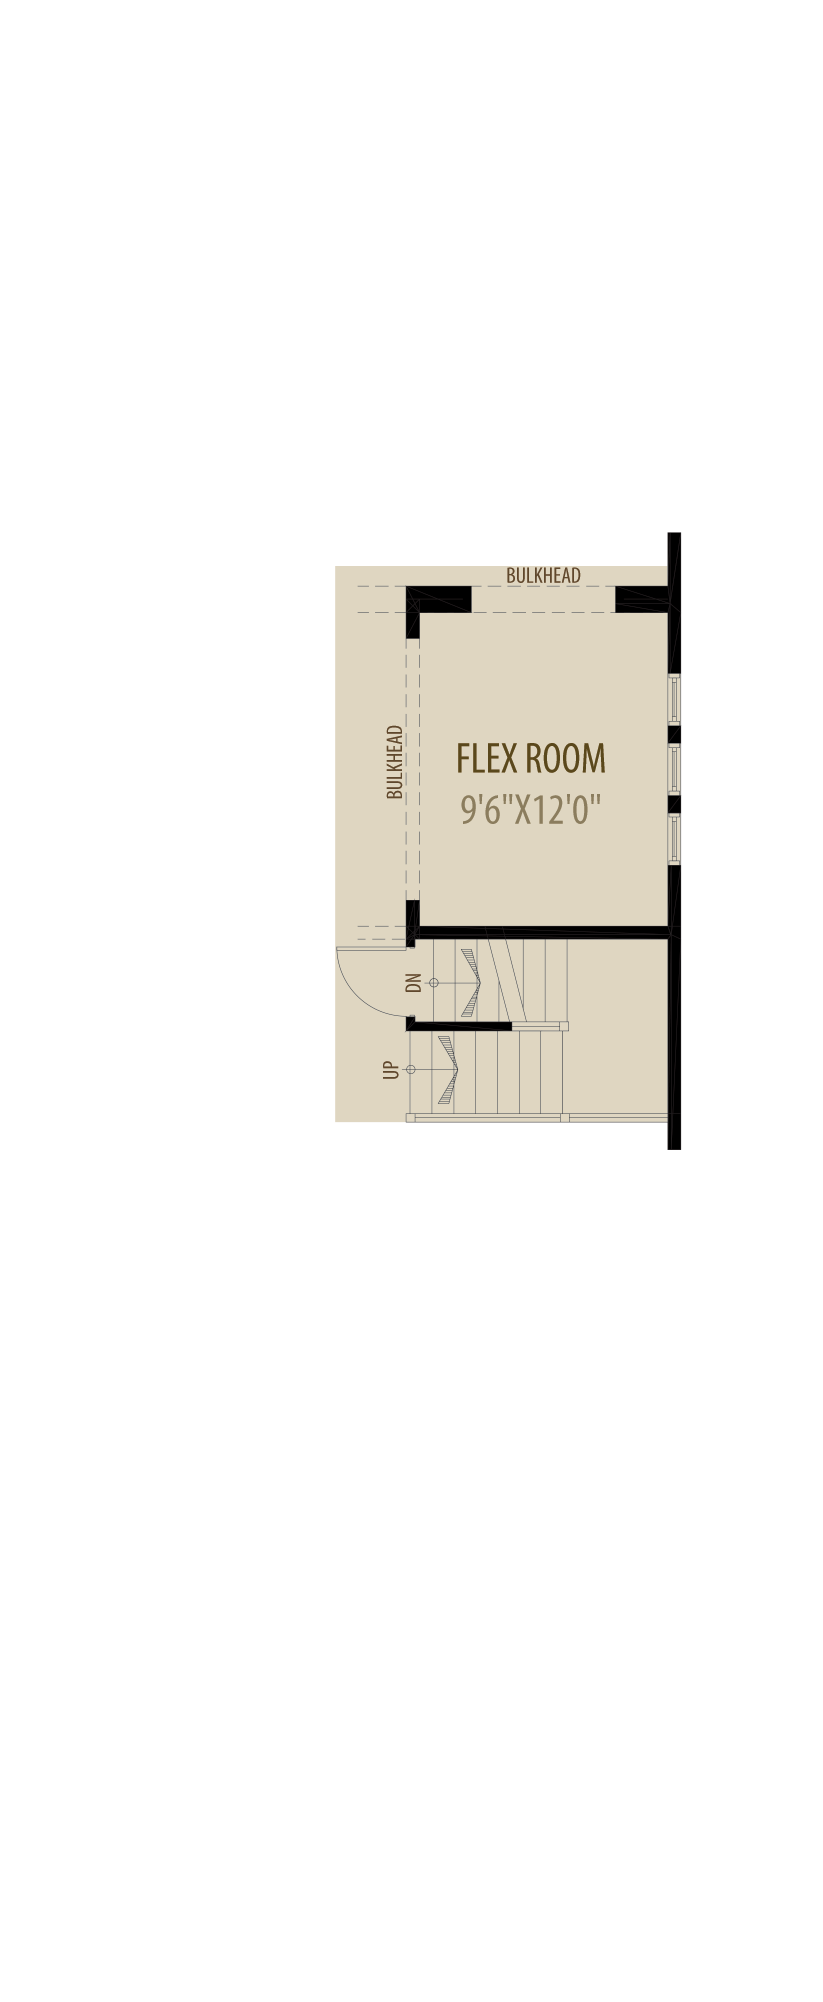 Flex Room adds 120 sq ft to Main removes 5 sq ft from Upper